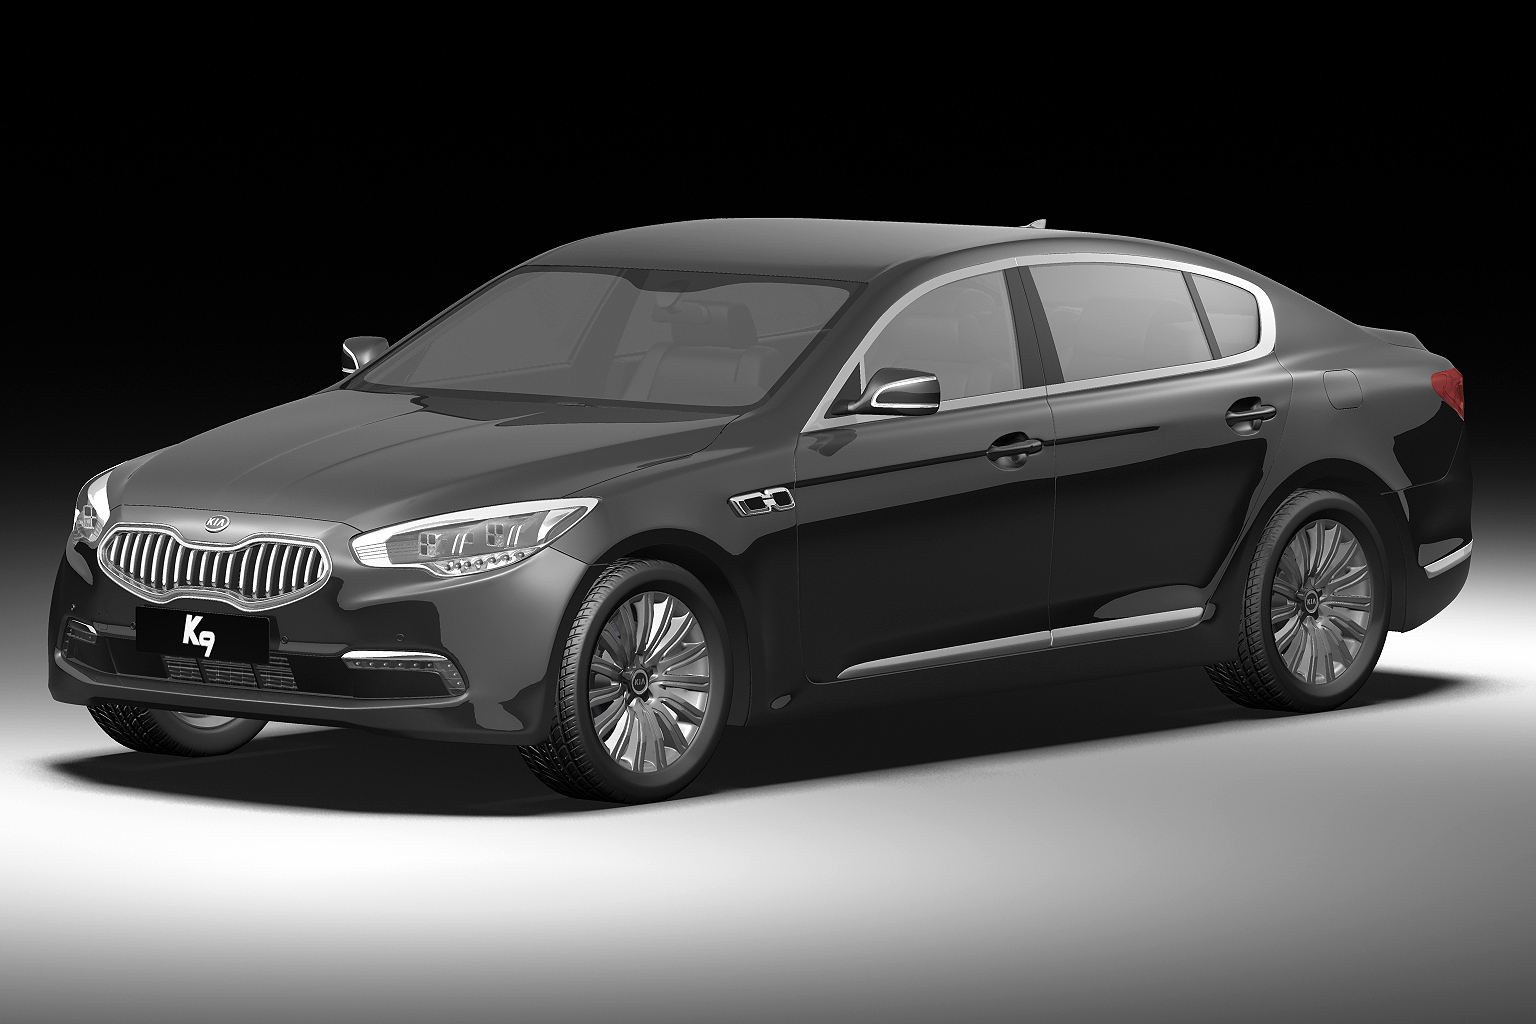 2012 kia k9 3d model 3ds max fbx c4d hr hr xsi